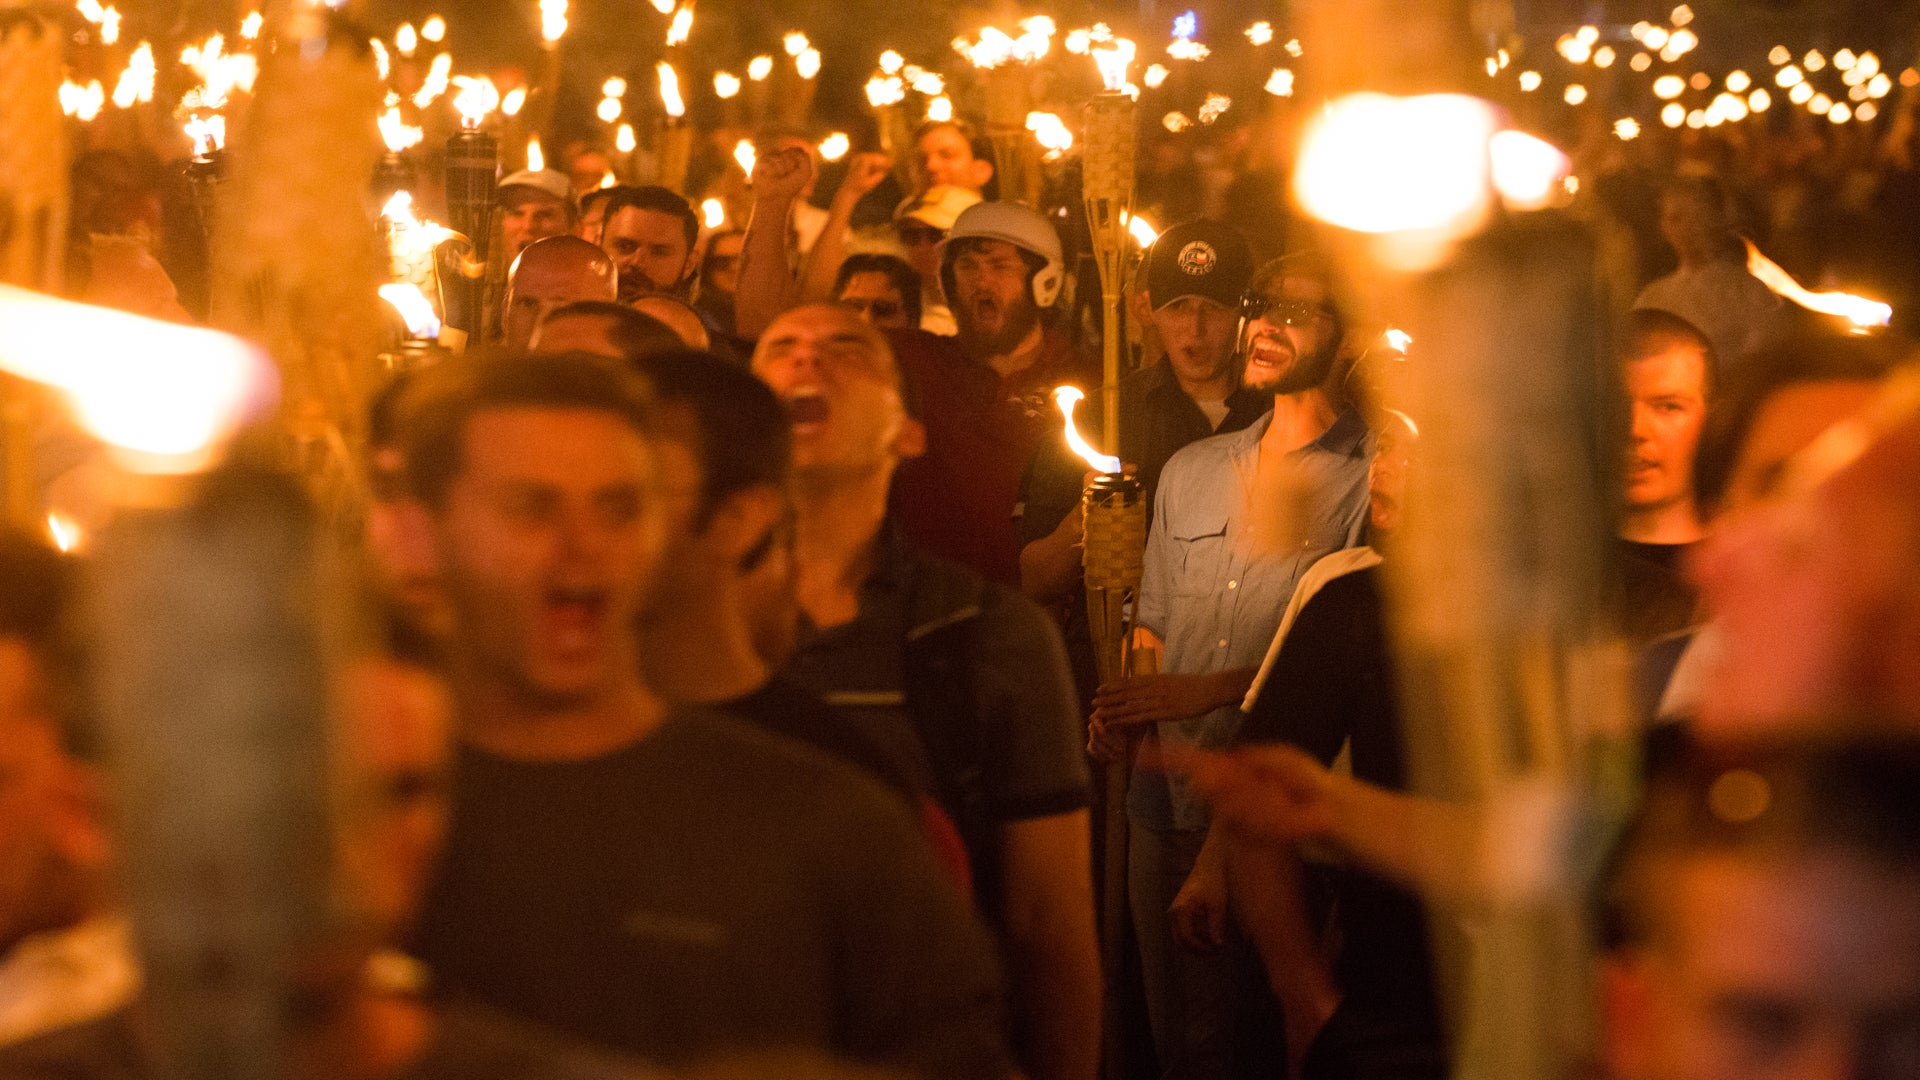 4 Alleged White Supremacists Charged With Rioting At Deadly Unite The Right Rally